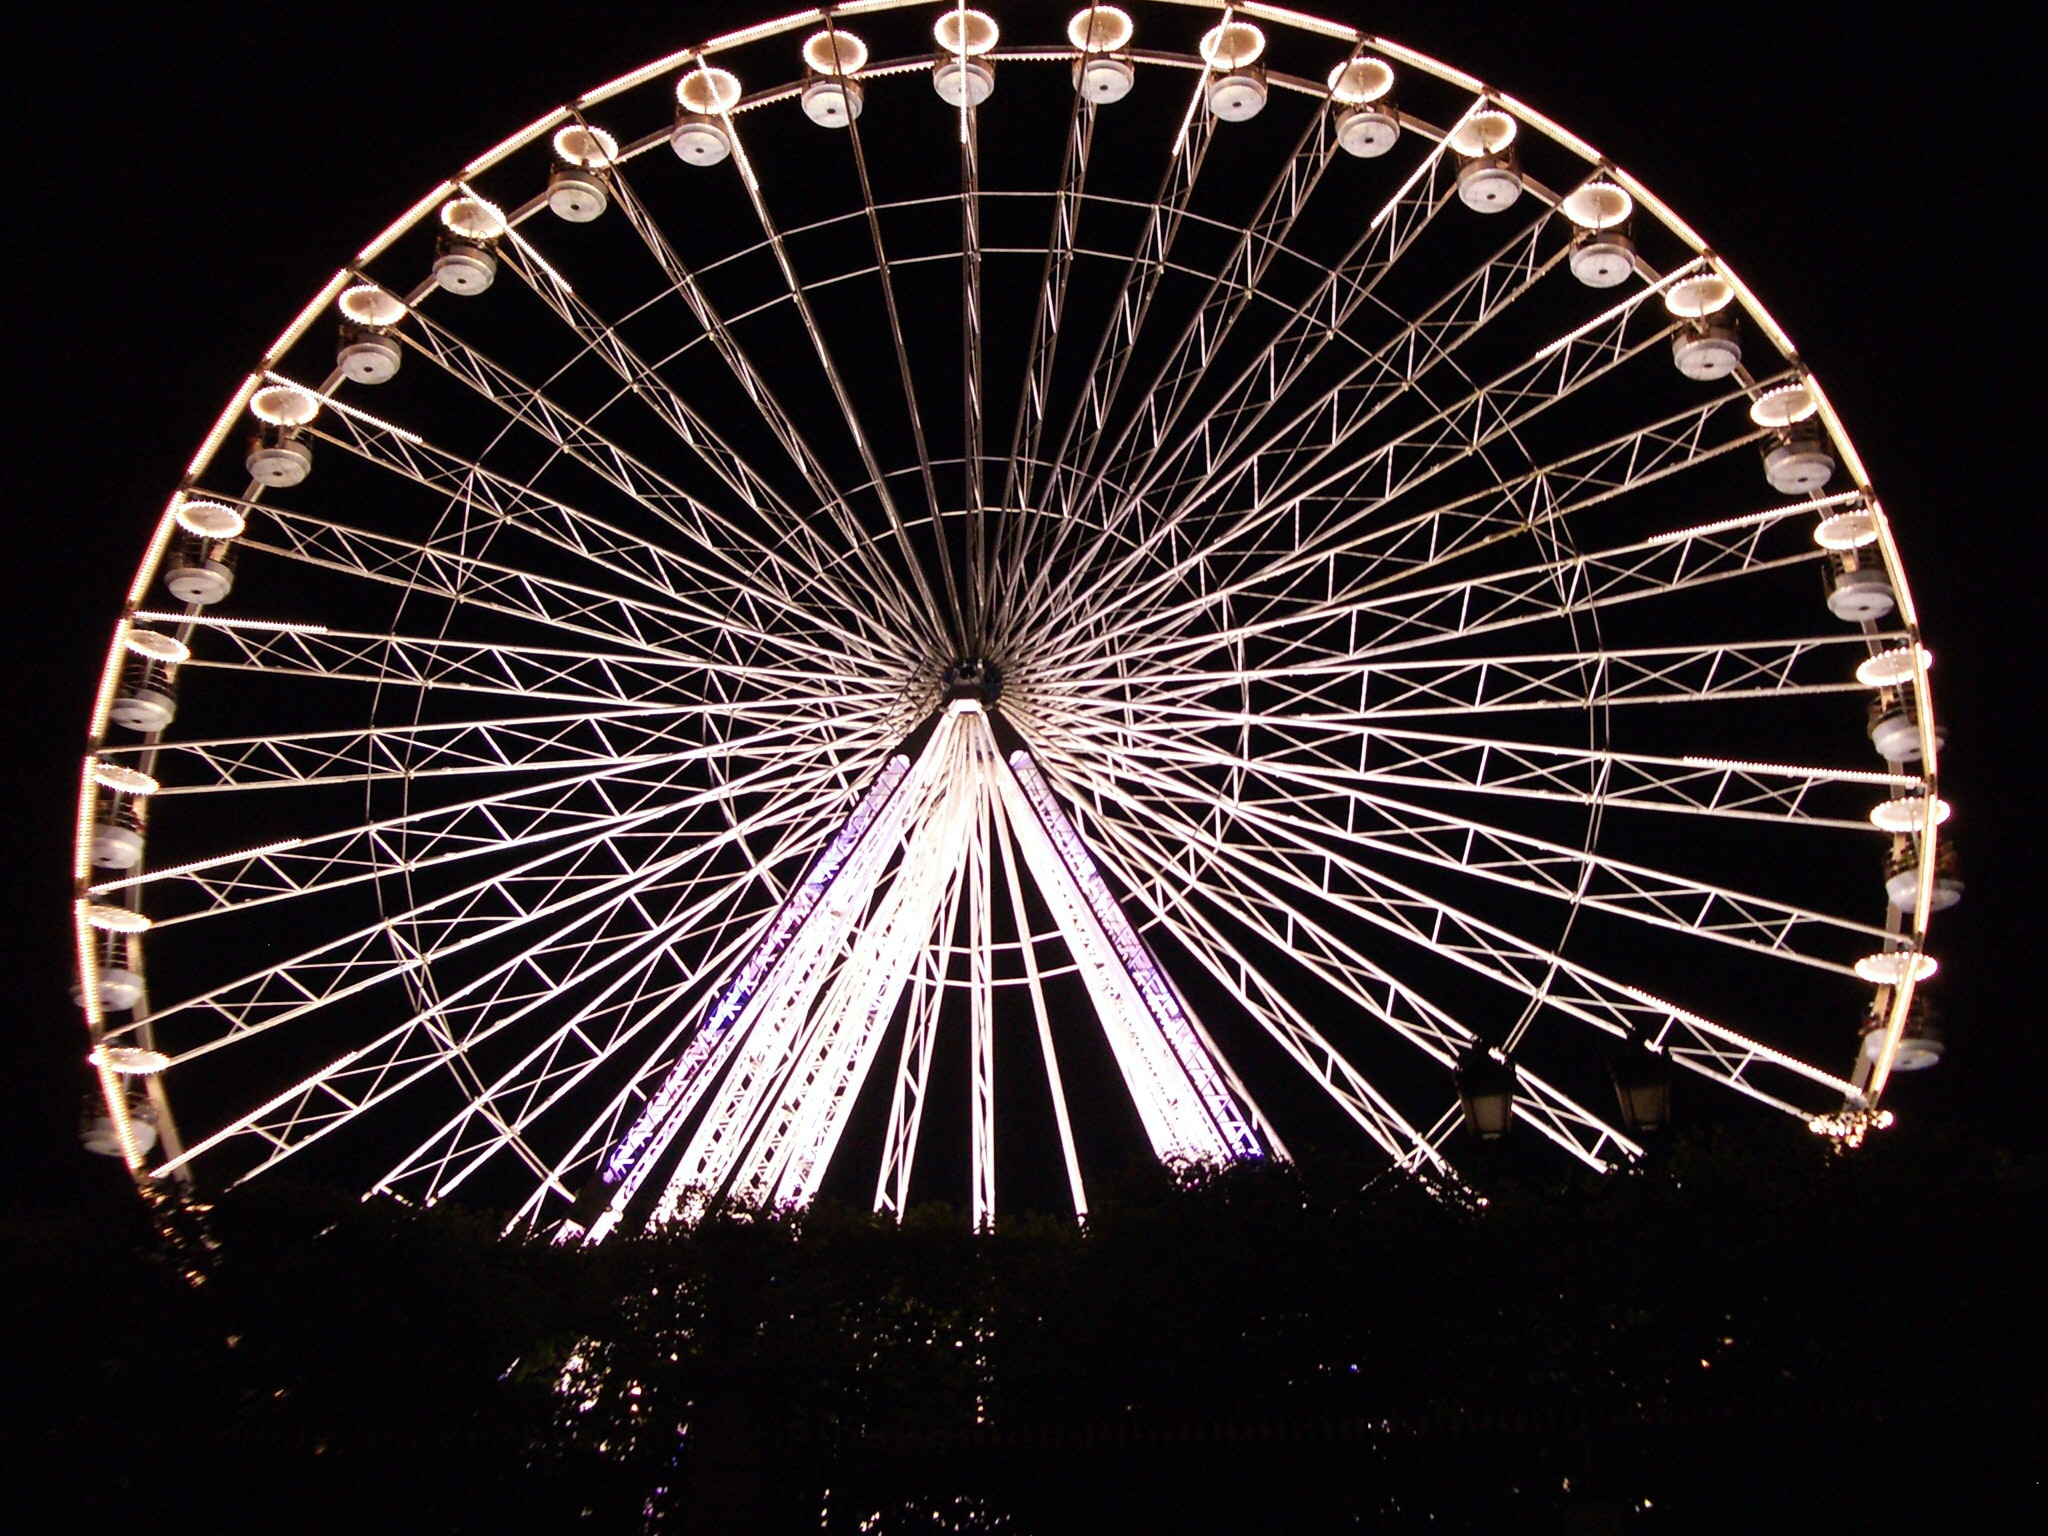 A well-lit Ferris wheel in Paris at nightfall above the silhouette of a hedge.